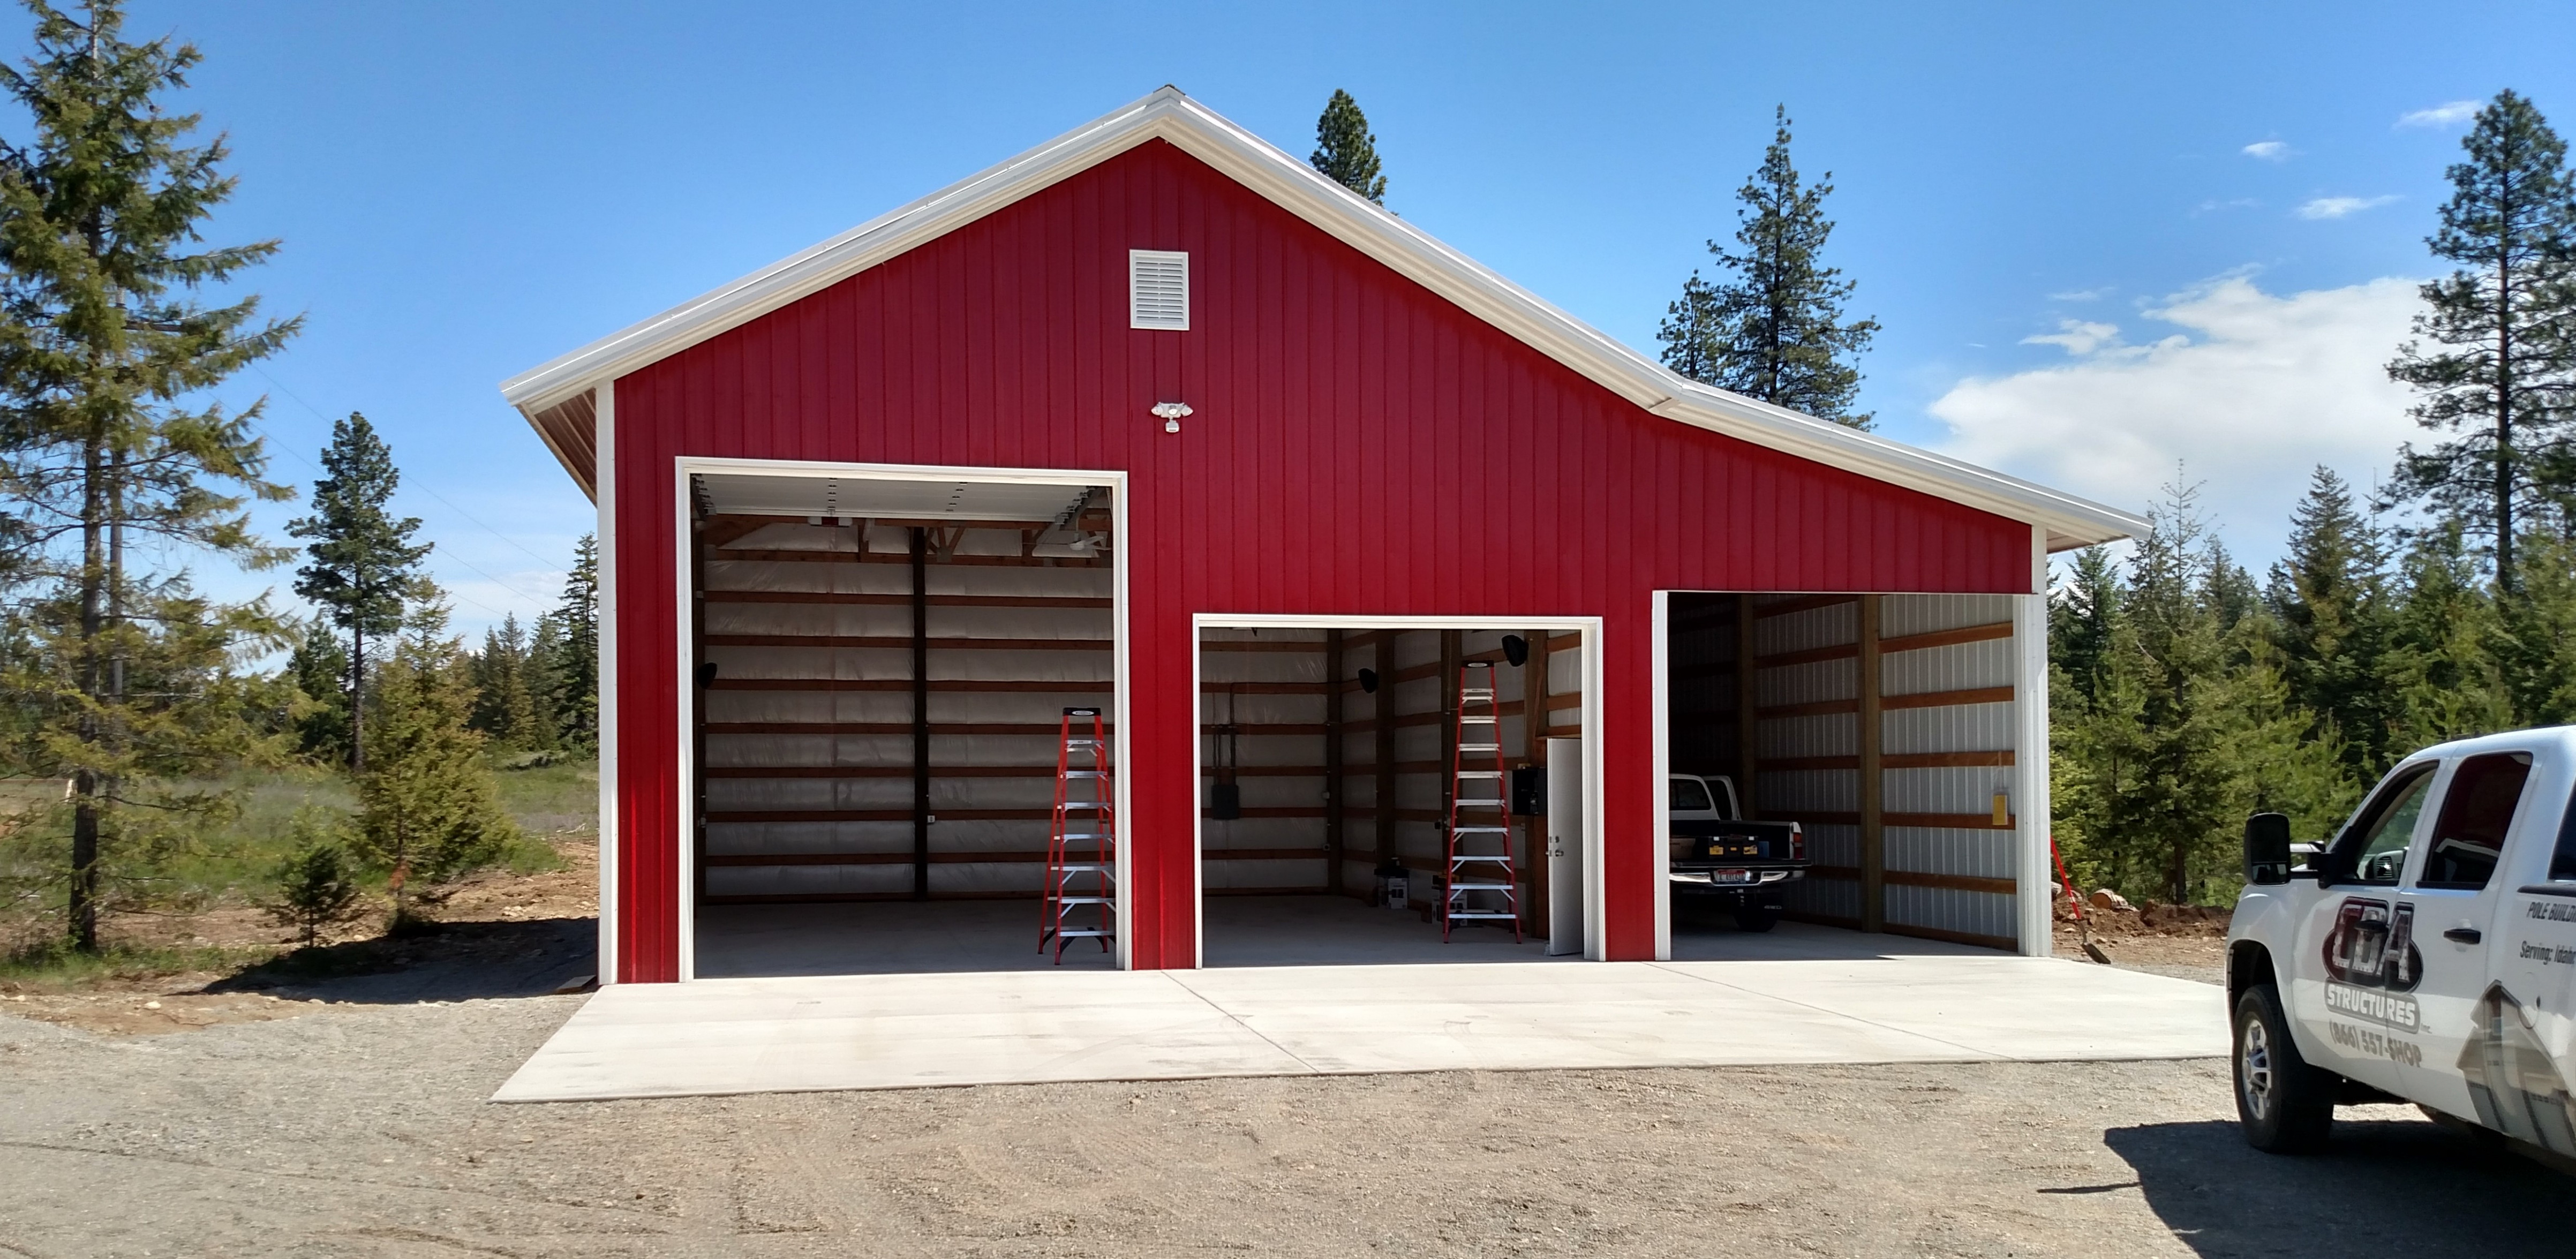 Steel & Metal Storage Buildings: Shops & Garages Garage Carport Buildings